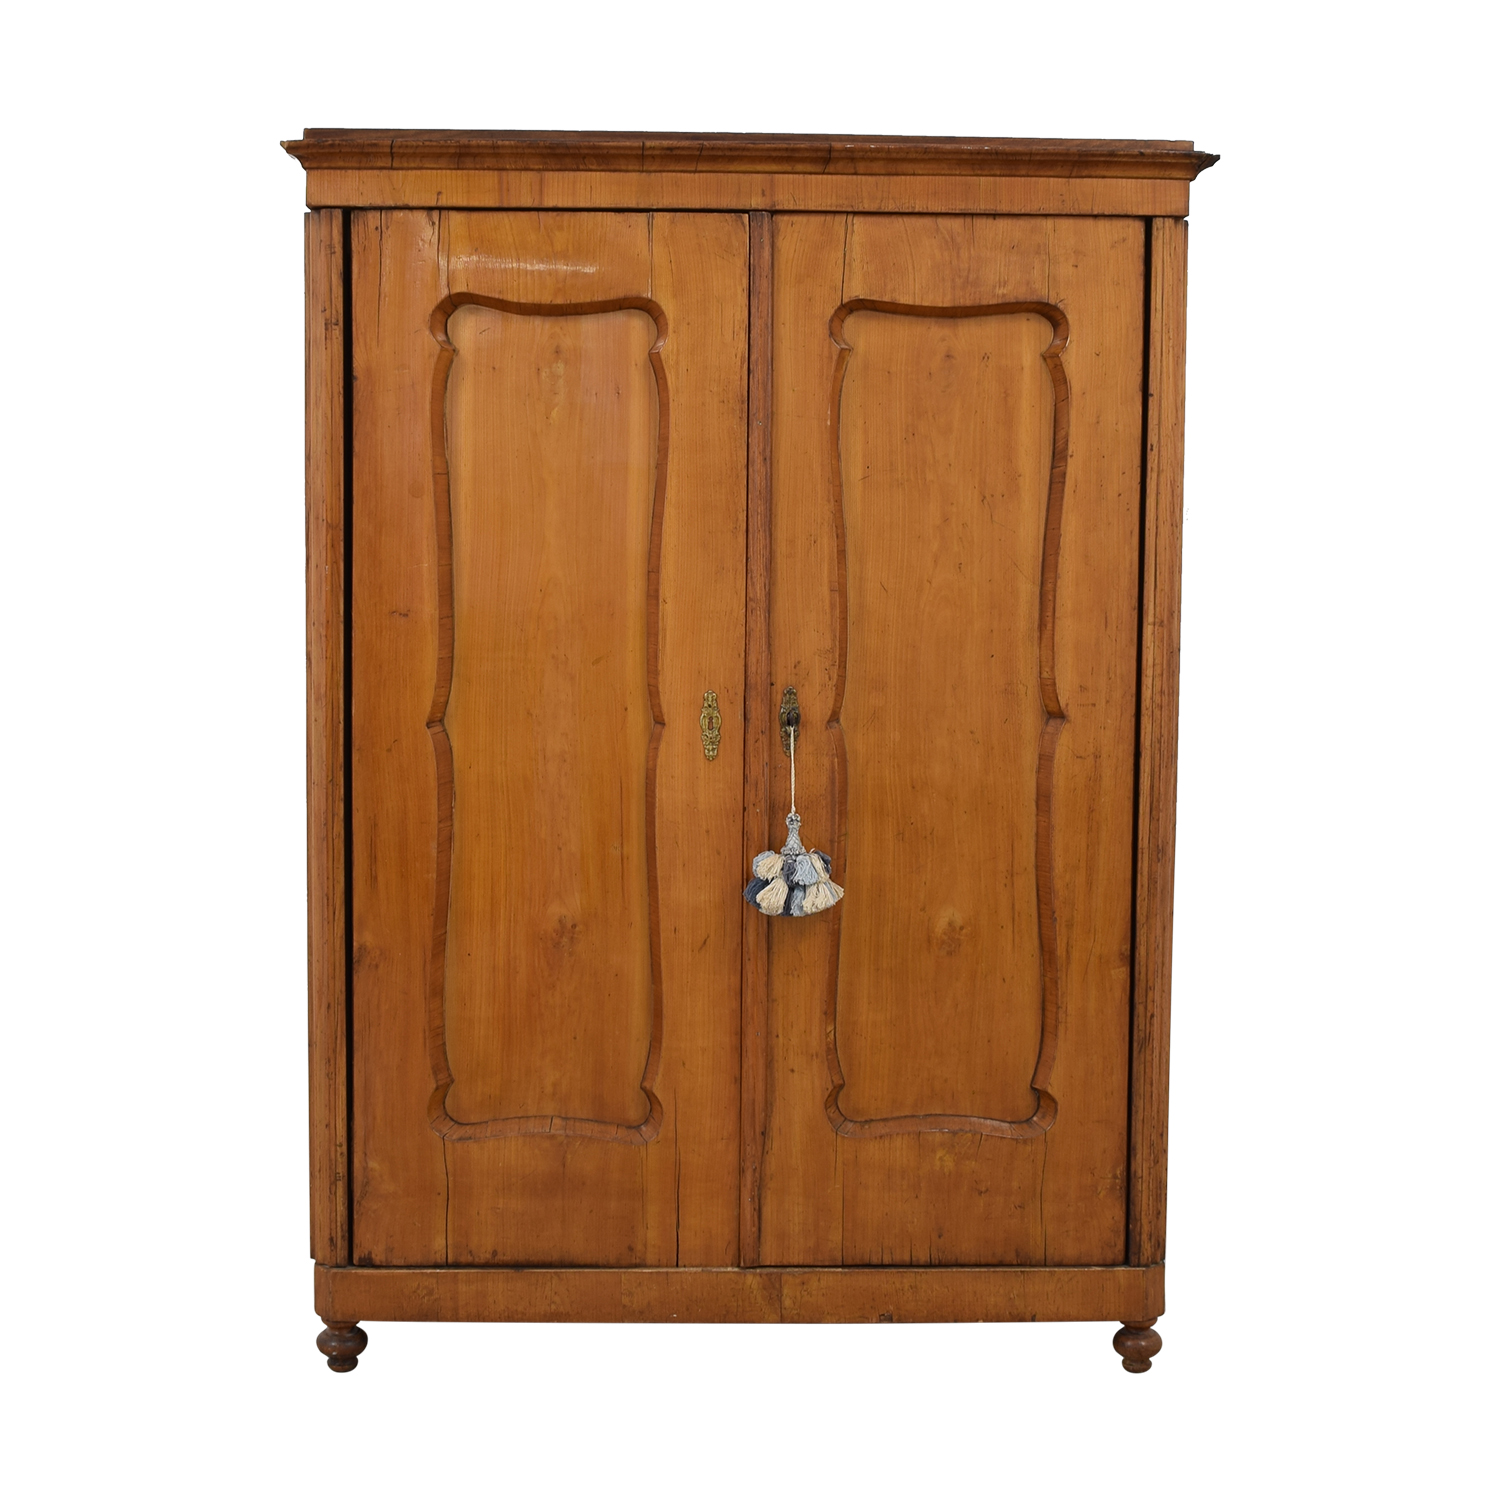 Wood Wardrobe Armoire with Shelves / Wardrobes & Armoires